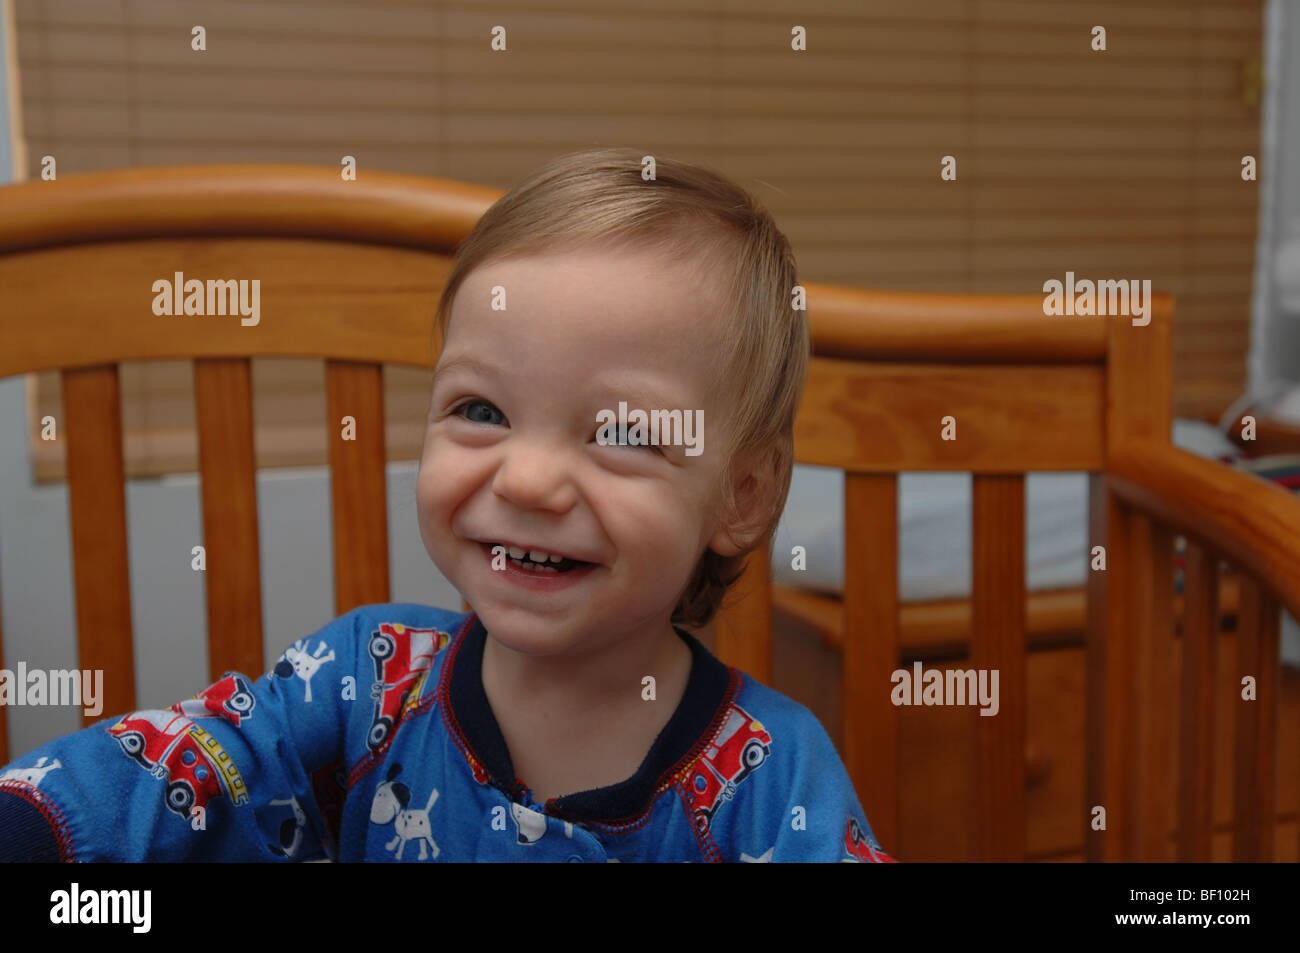 A very happy young blond boy stands in his crib smiling and laughing while wearing firetruck pajamas. - Stock Image